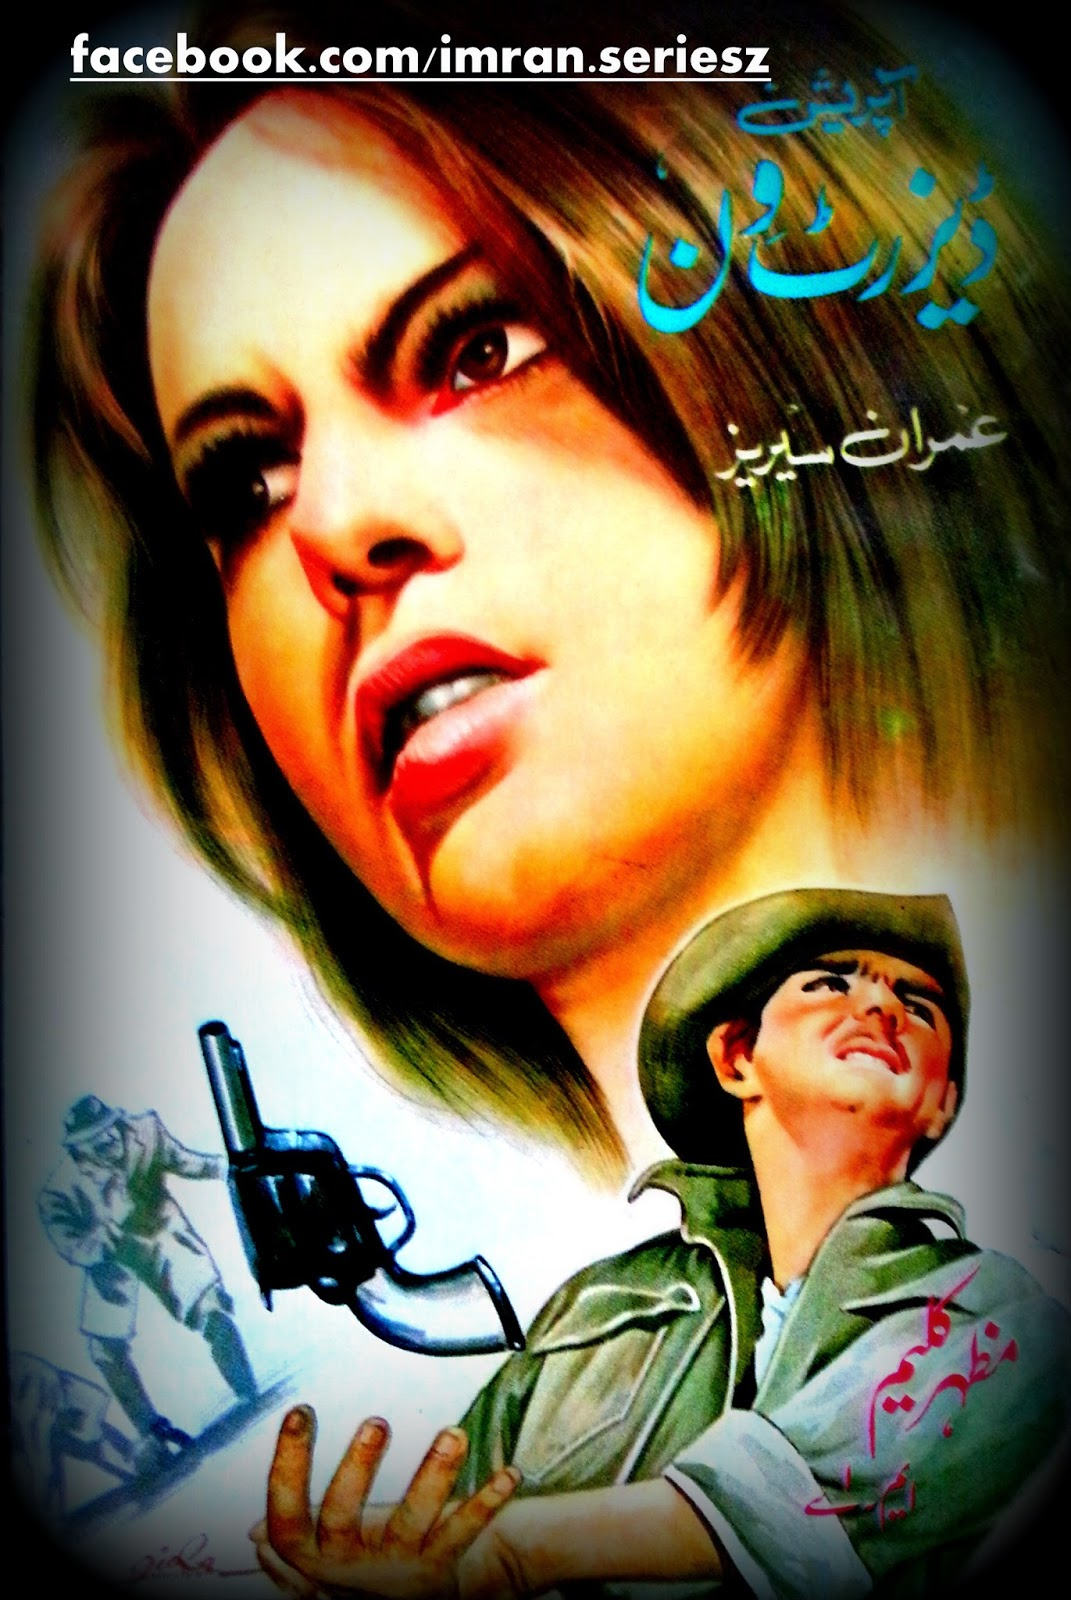 20141020 2153350 - Operation Desert One By Mazhar Kaleem MA